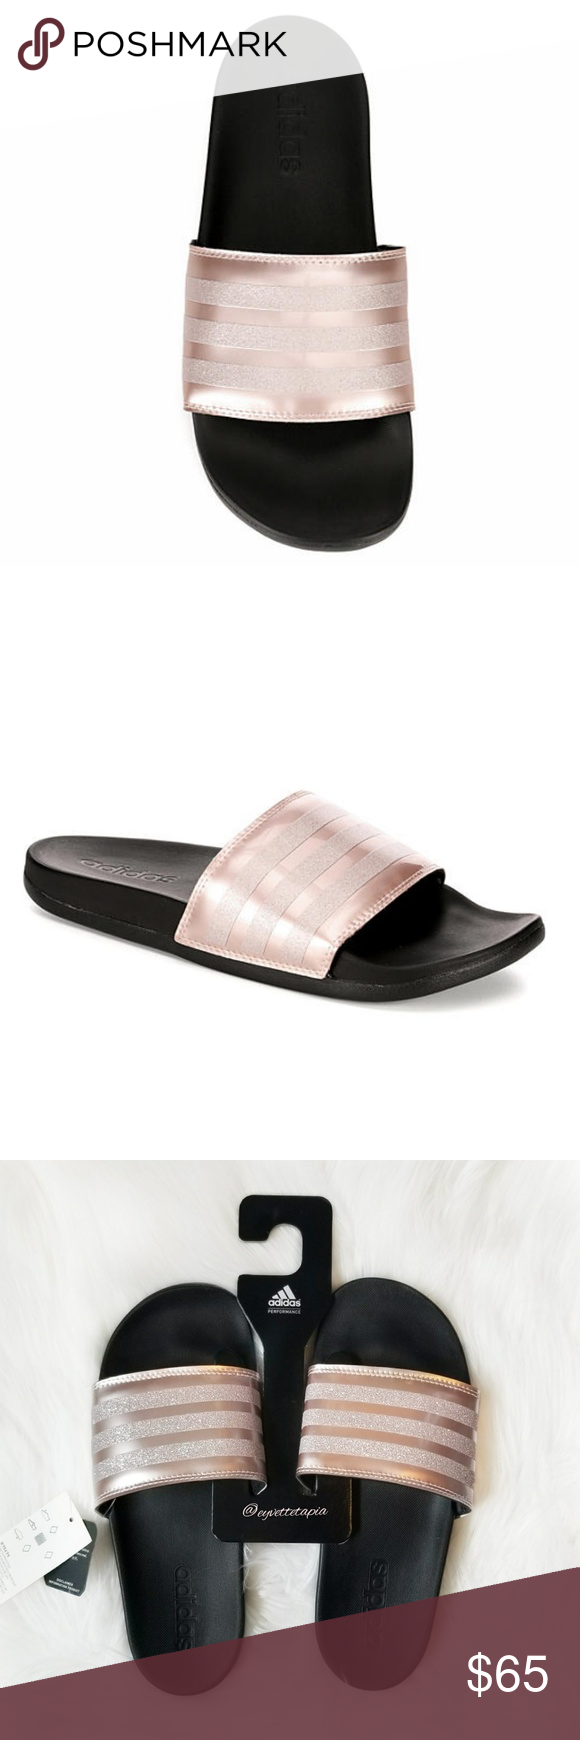 fdab5ec76 Adidas pink rose gold slide sandals Slip into comfort with the Adidas  Cloudfoam women s sandal. A slide on construction is topped off with a wide  strap and ...